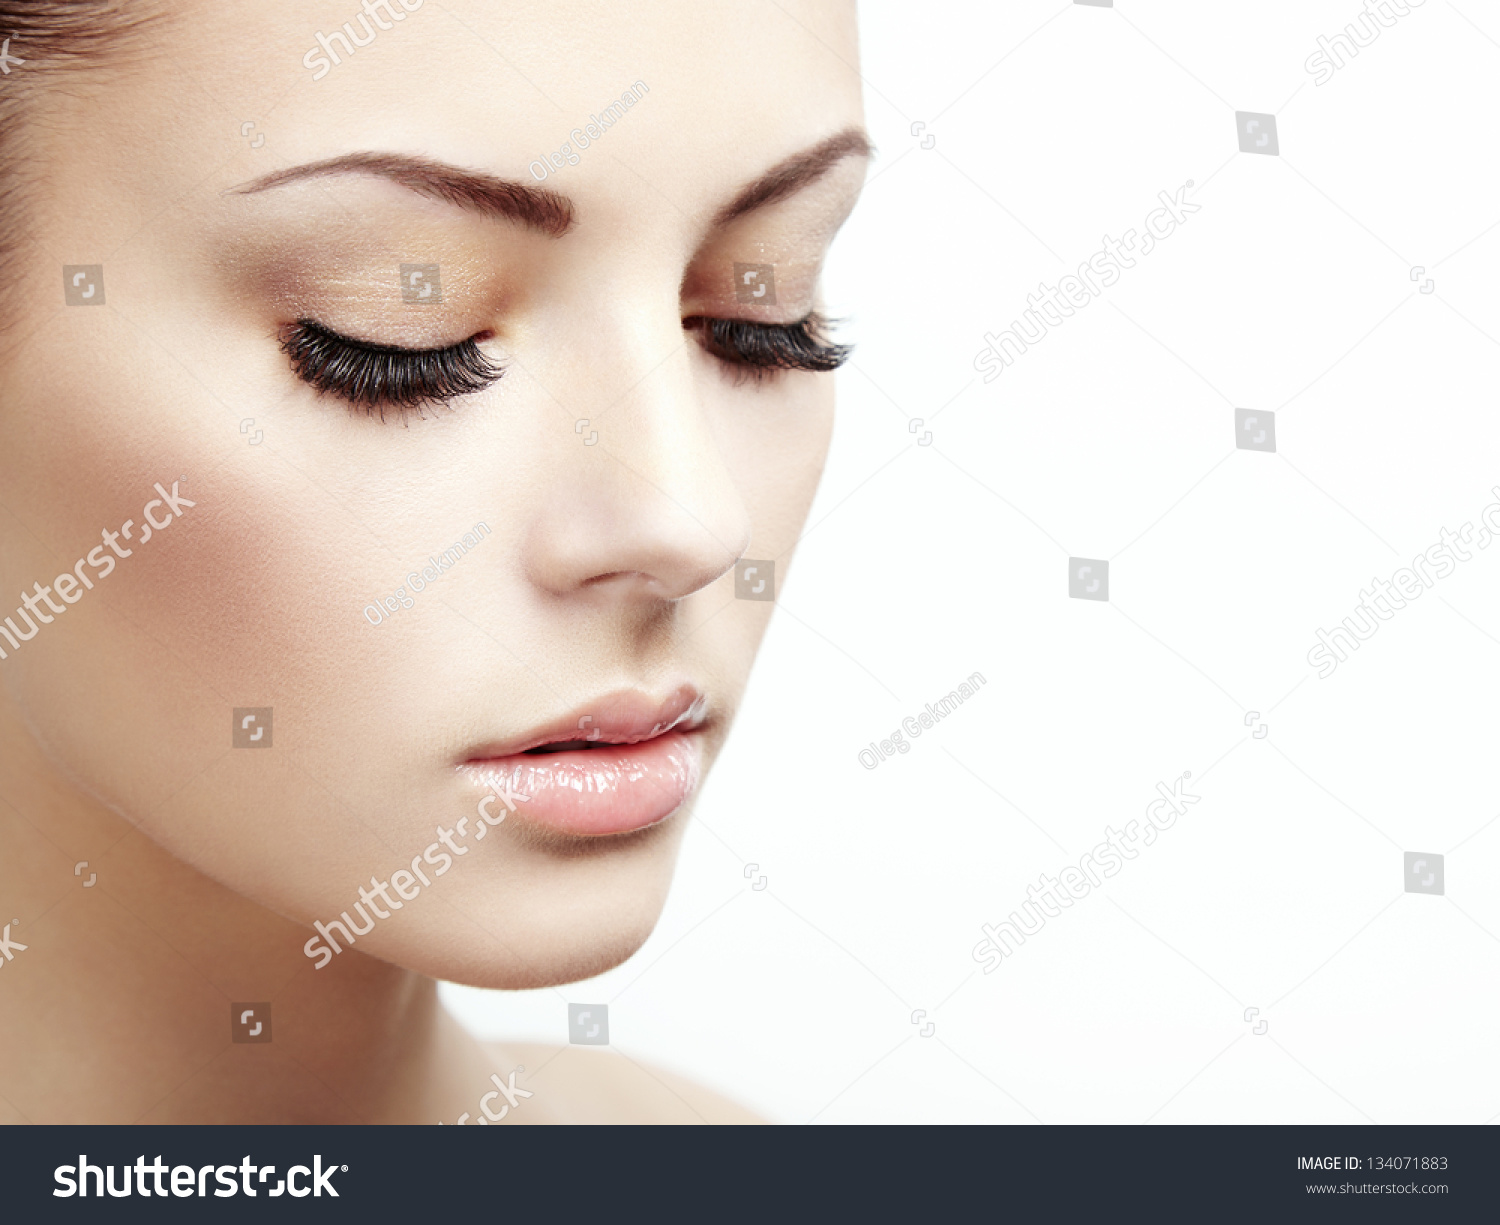 Pretty Ladies Face In Ephremtube: Beautiful Woman Face. Perfect Makeup. Beauty Fashion Stock